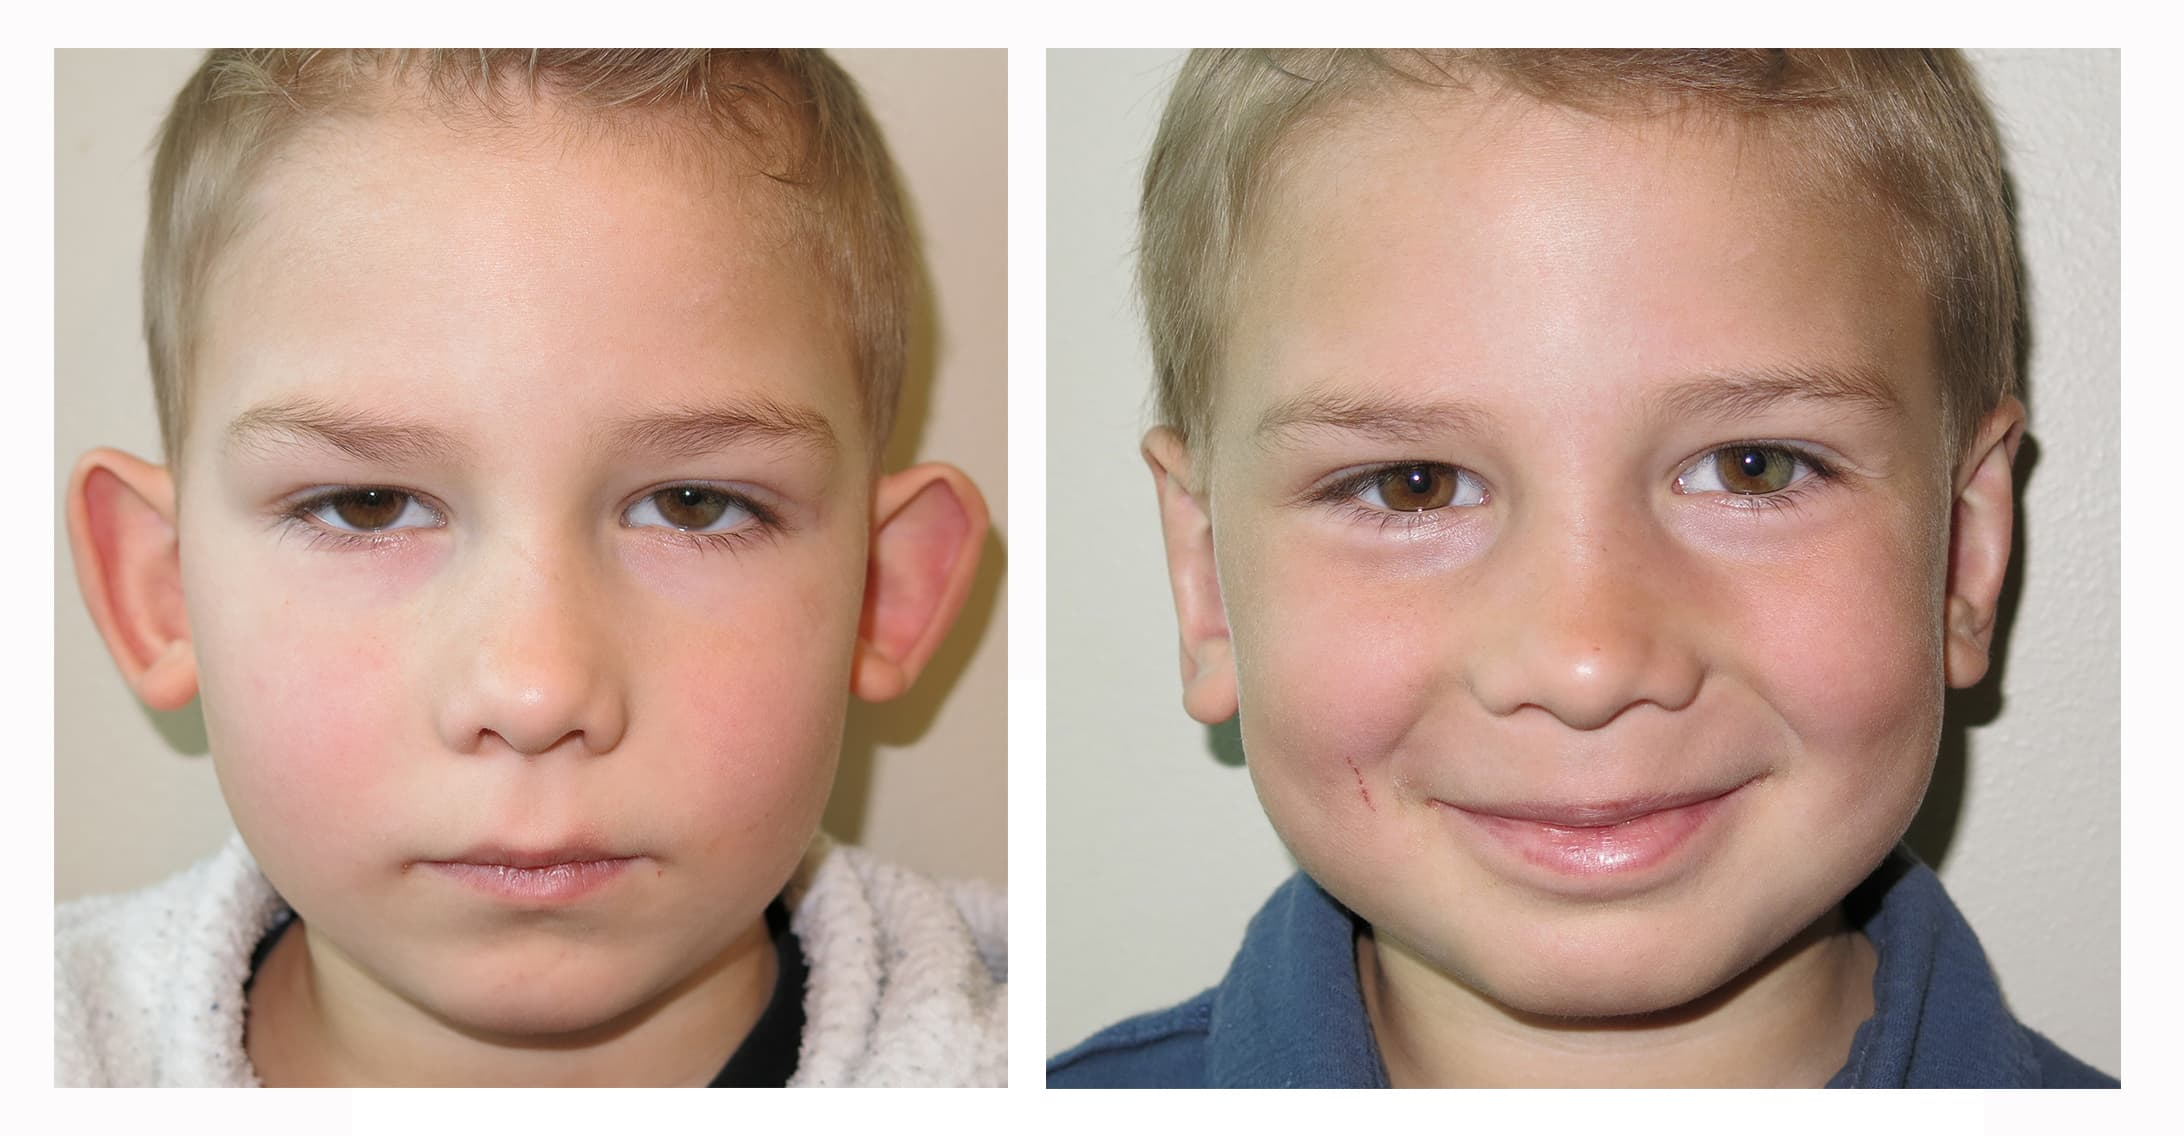 Ear Plastic Surgery Before And After Photos 1